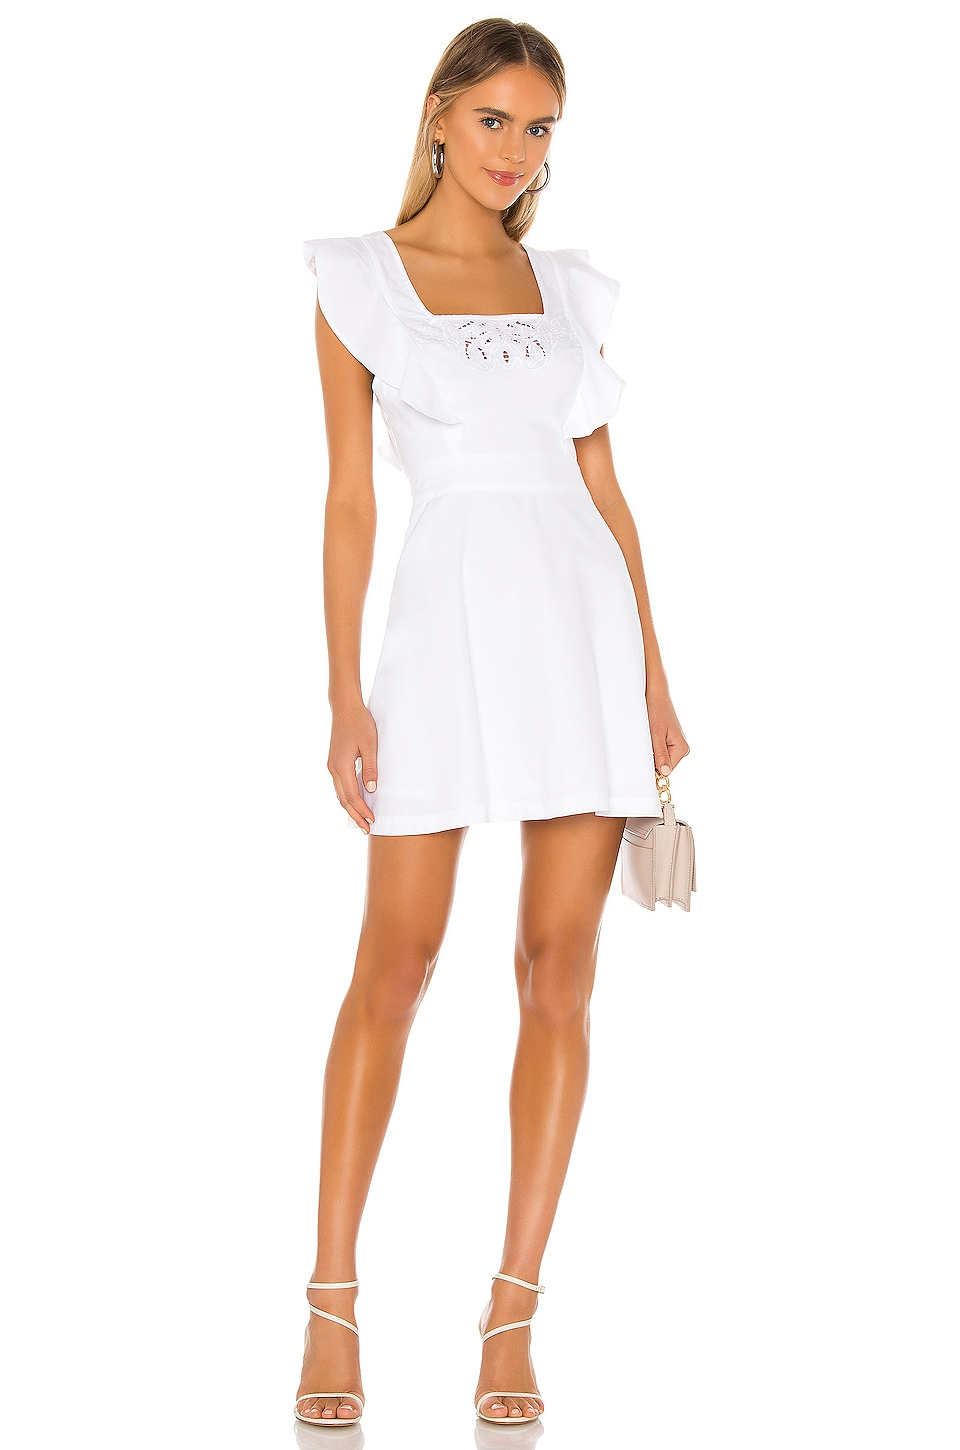 Tie Back Dress             BCBGeneration                                                                                                       CA$ 162.65 9